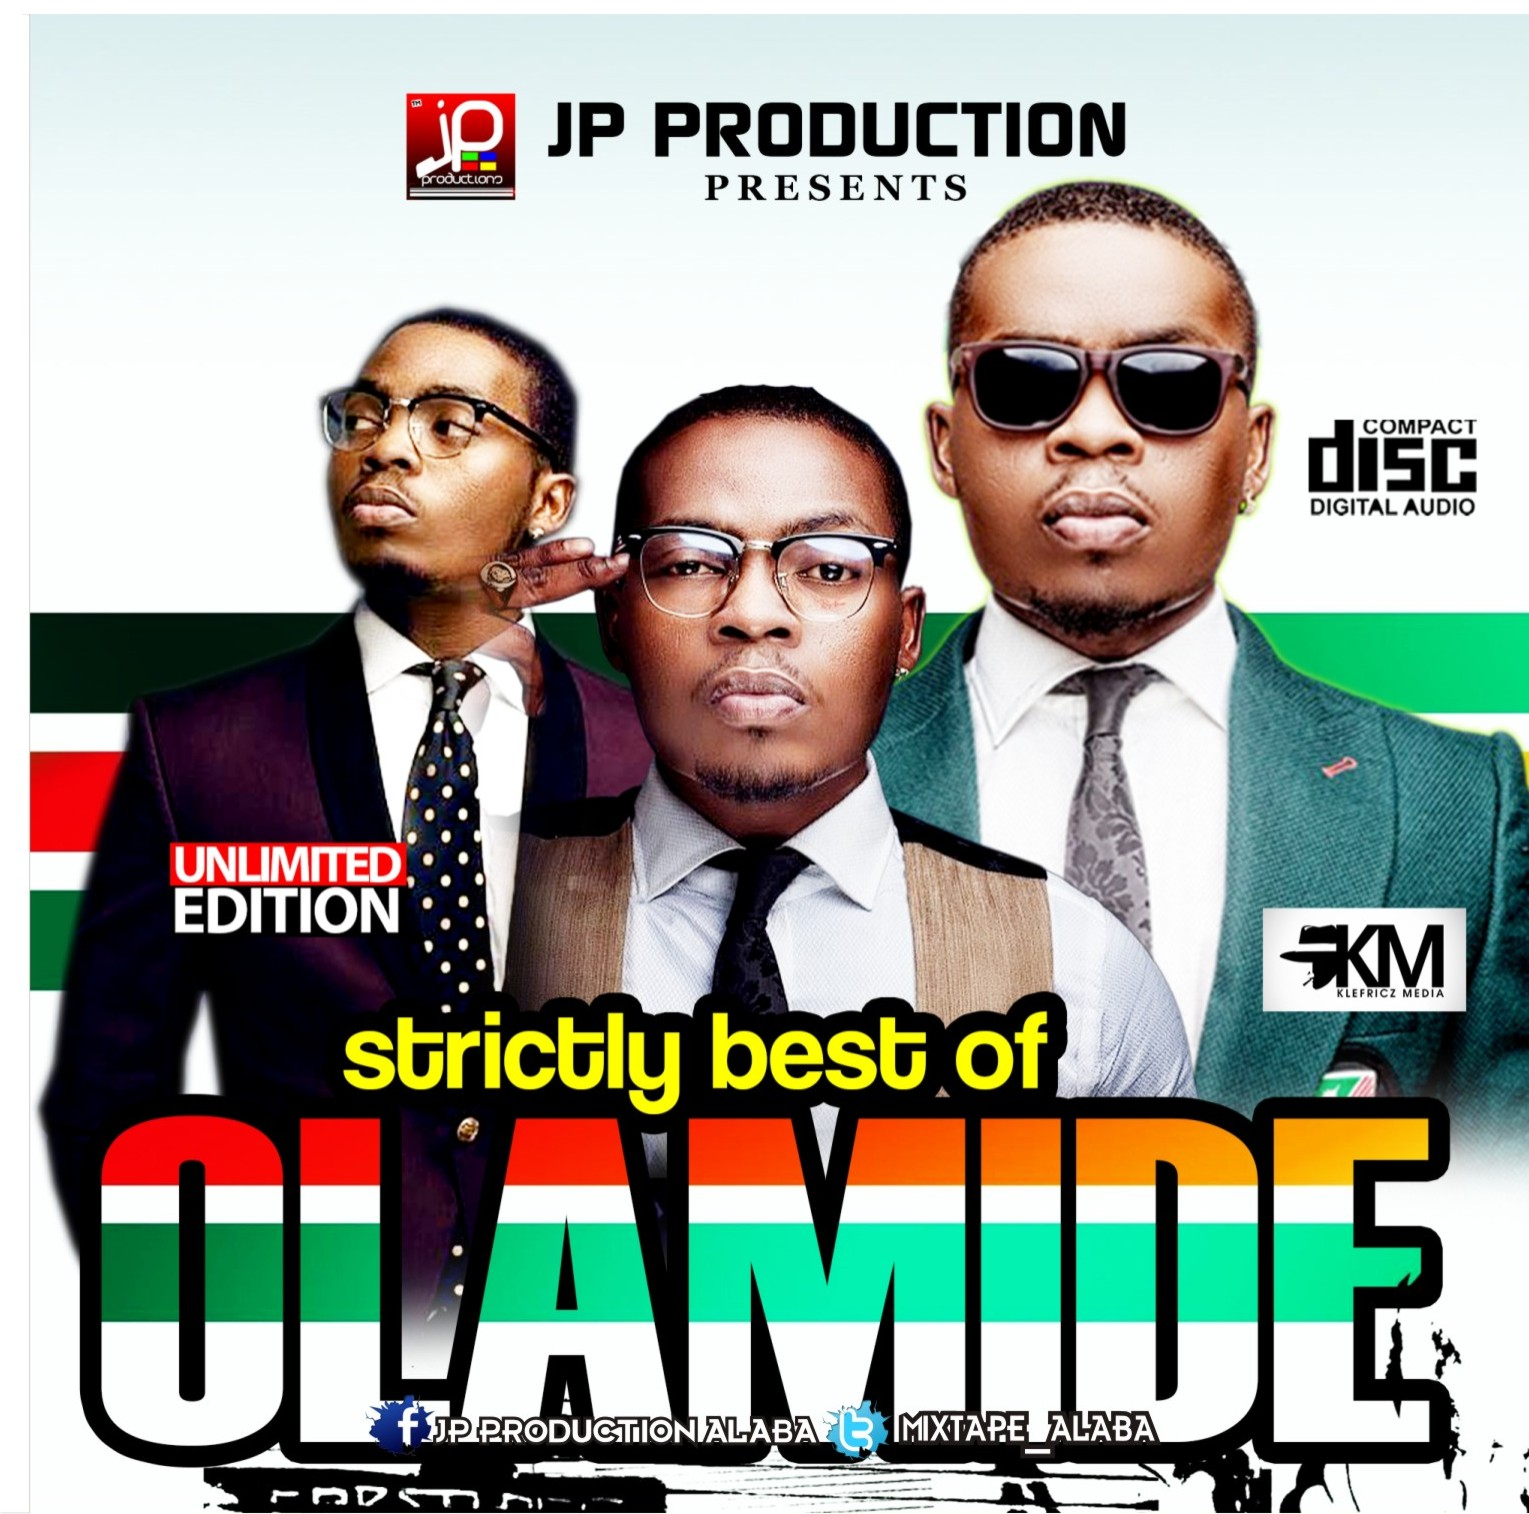 ALABA MIX TAPE-BEST OF OLAMIDE (BY JP PRODUCTION) - ALABA